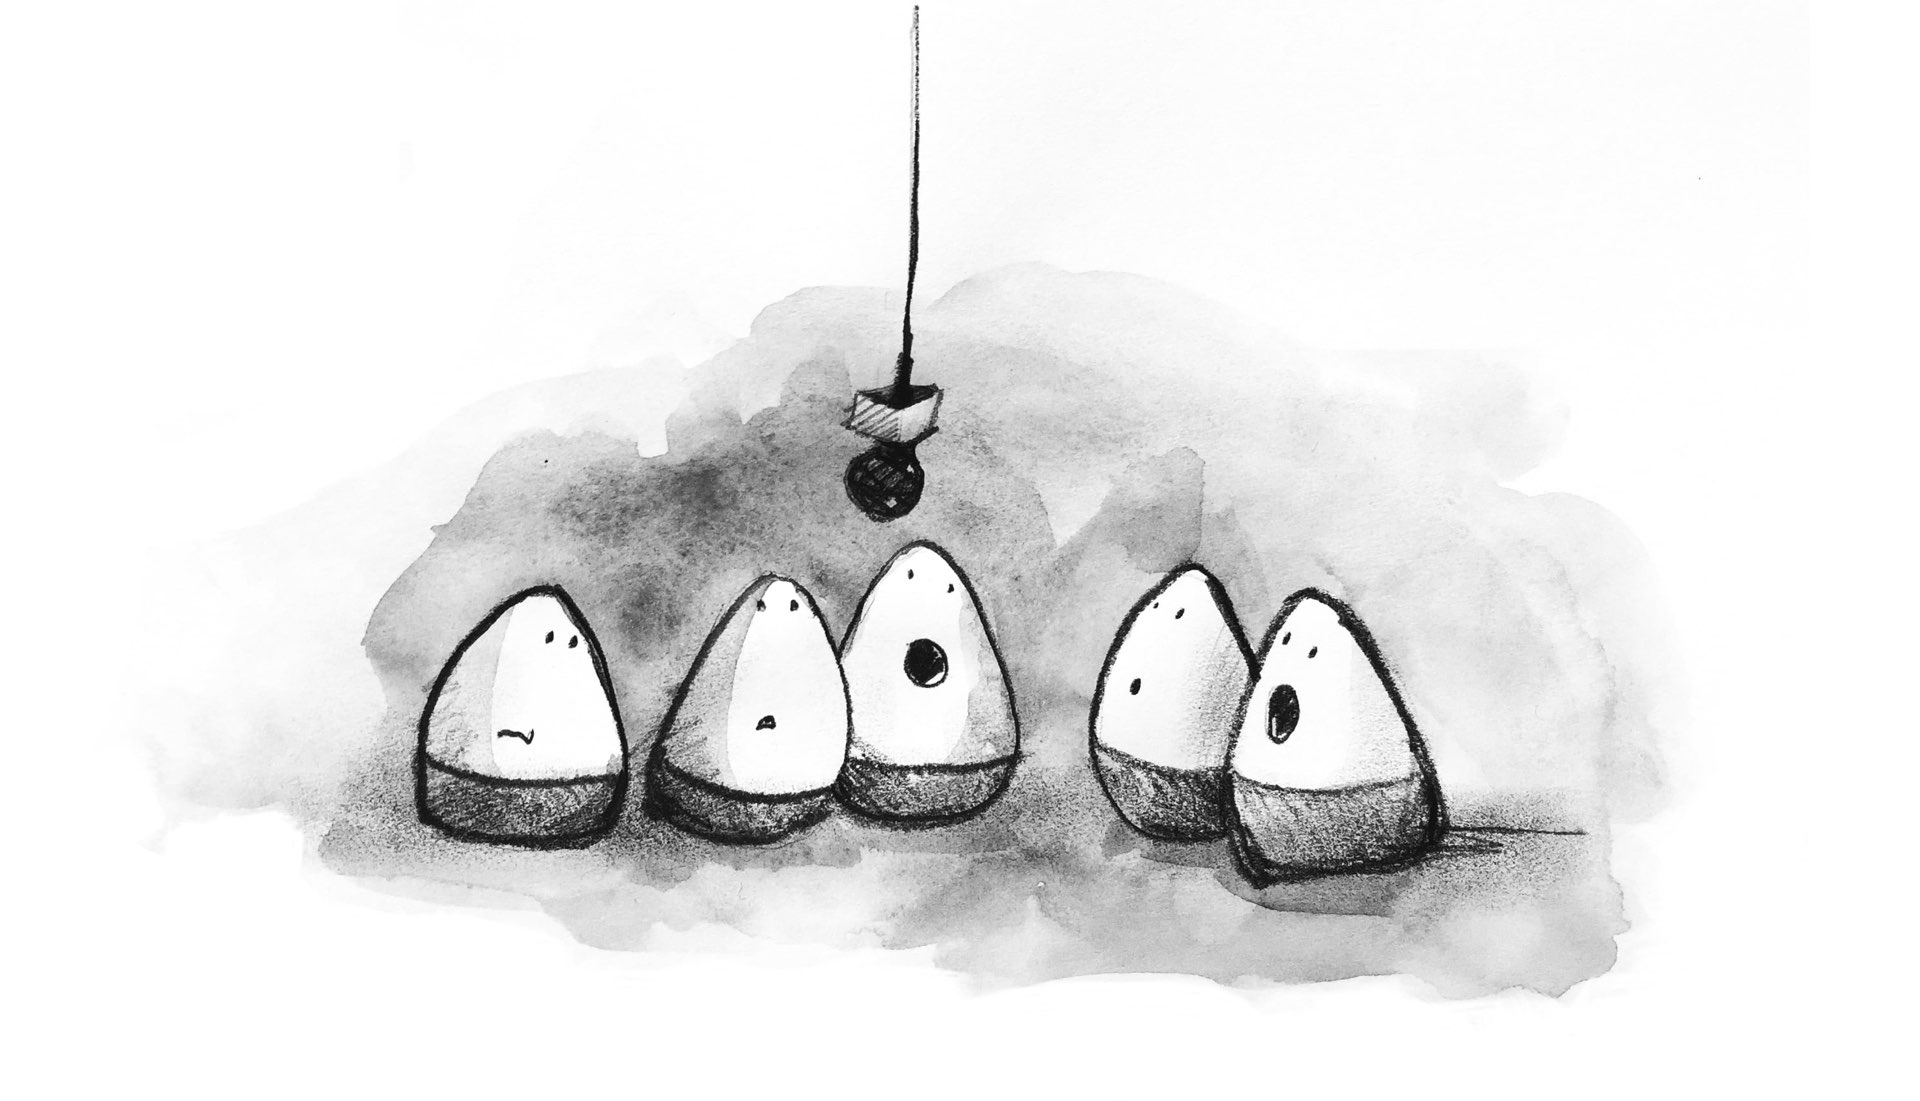 A quintet of HTML 'eggs' singing in front of a microphone